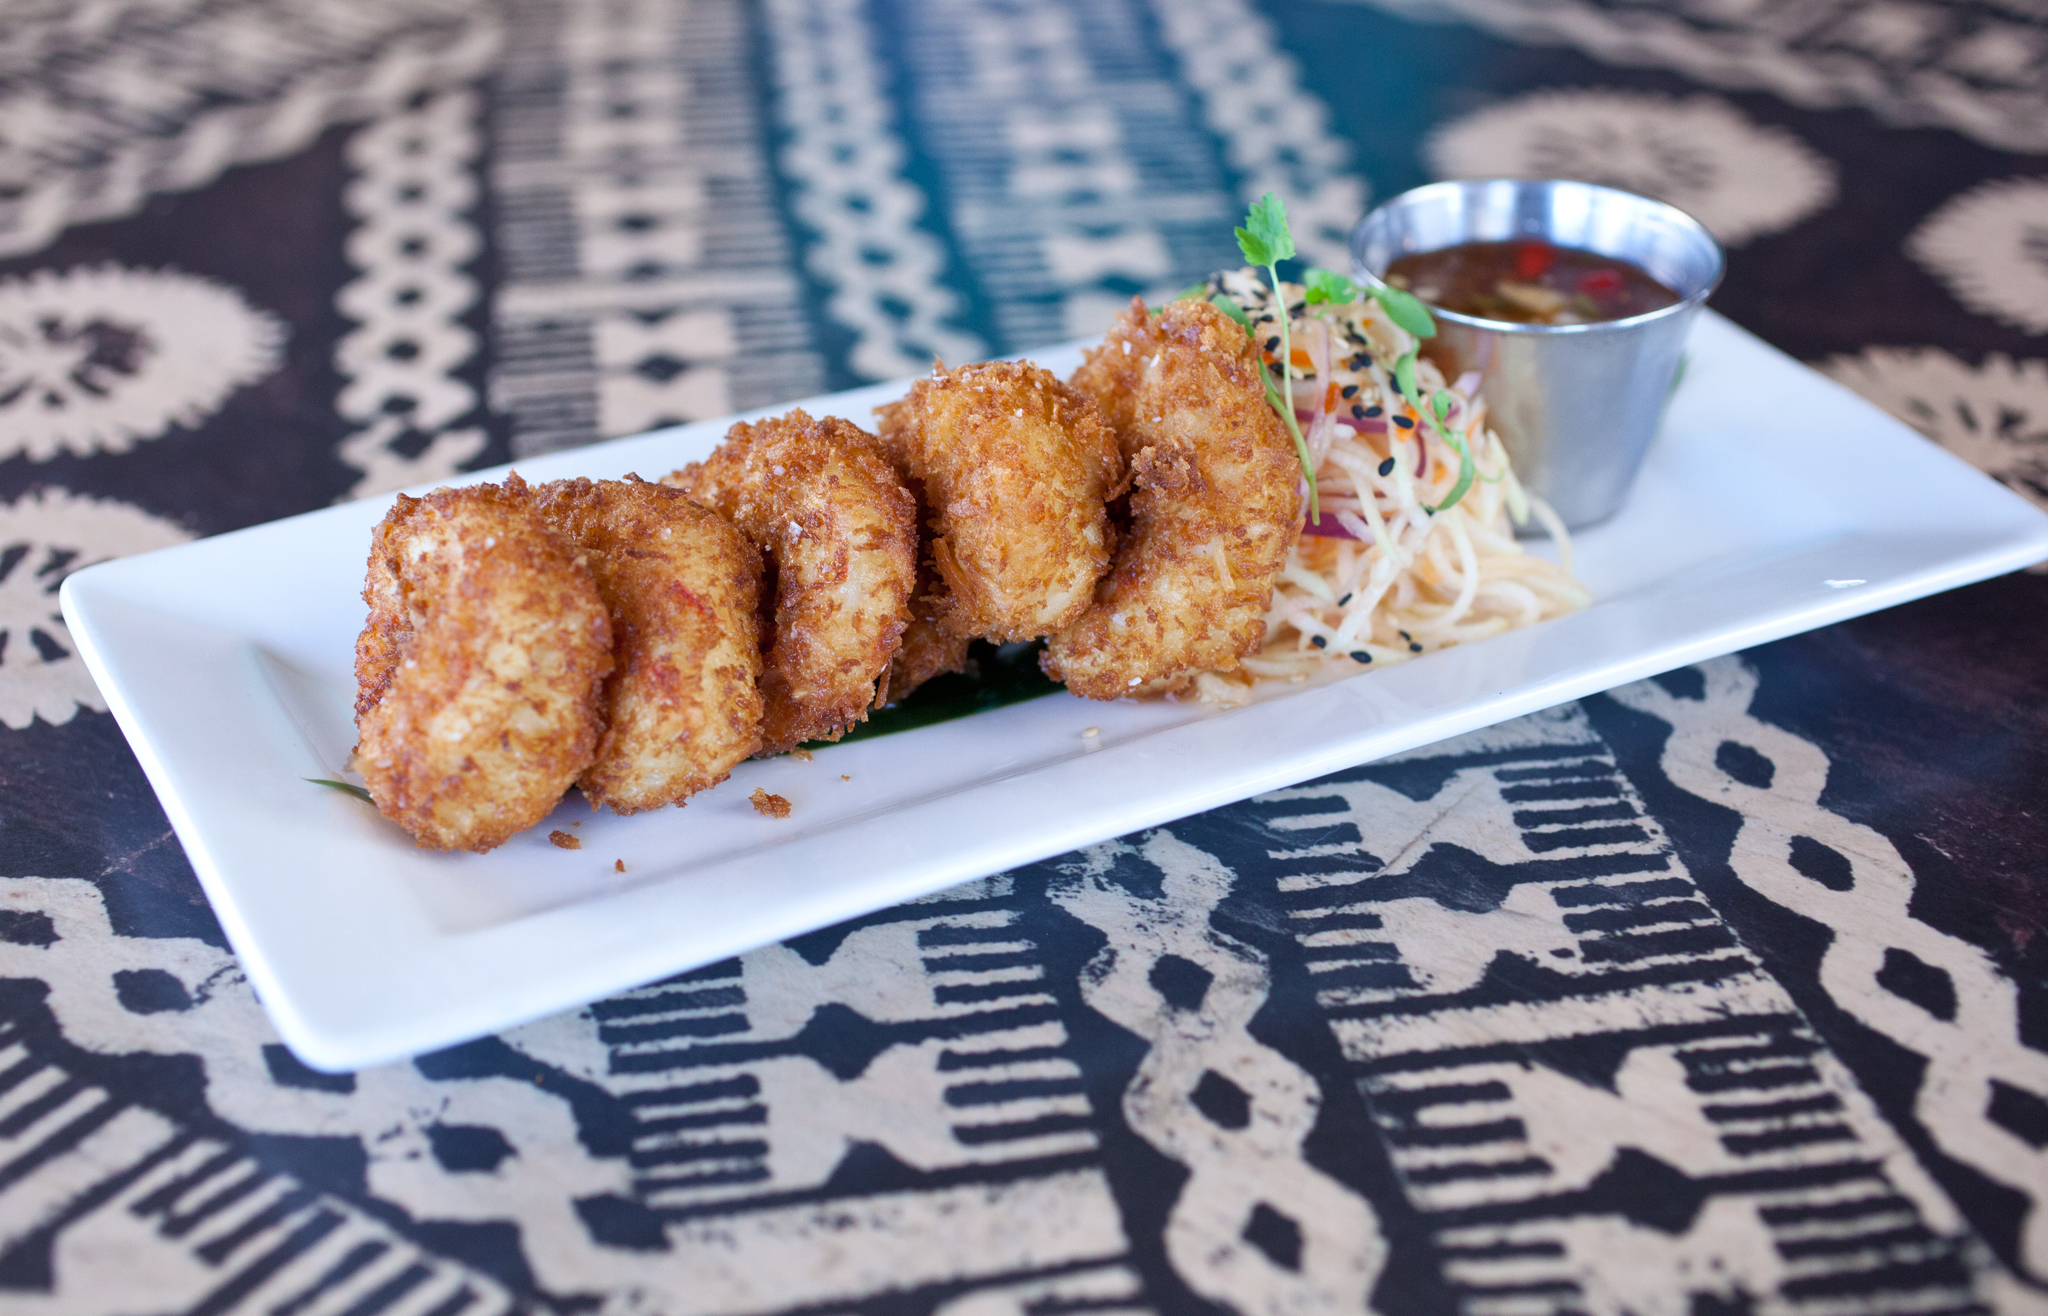 Appetizers to share